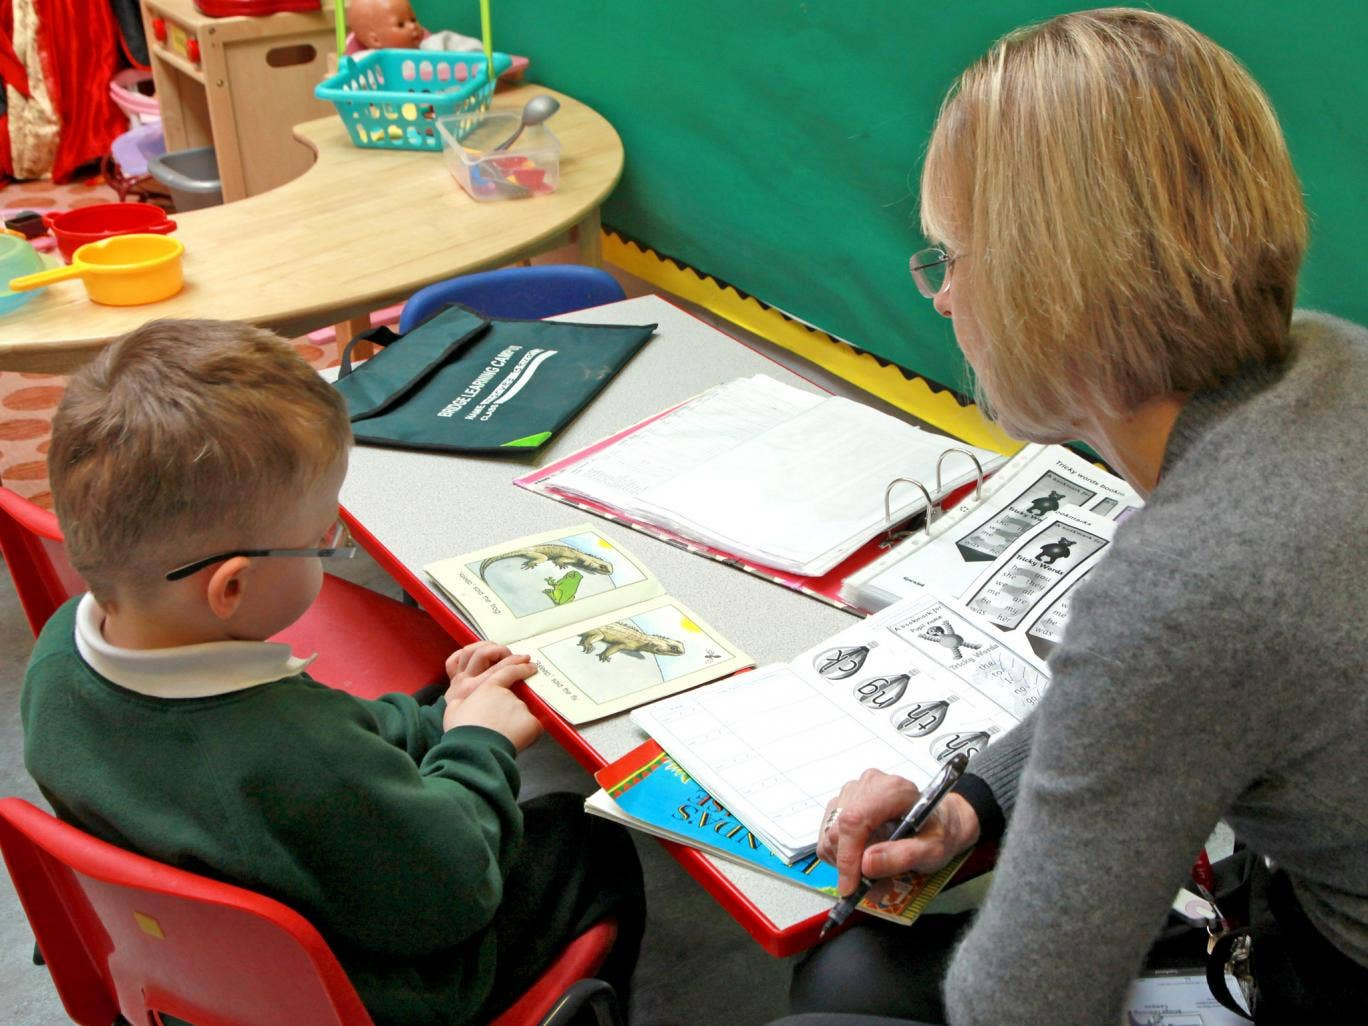 The reports suggests primary school teachers should be coached to give their pupils basic knowledge of how the employment world works